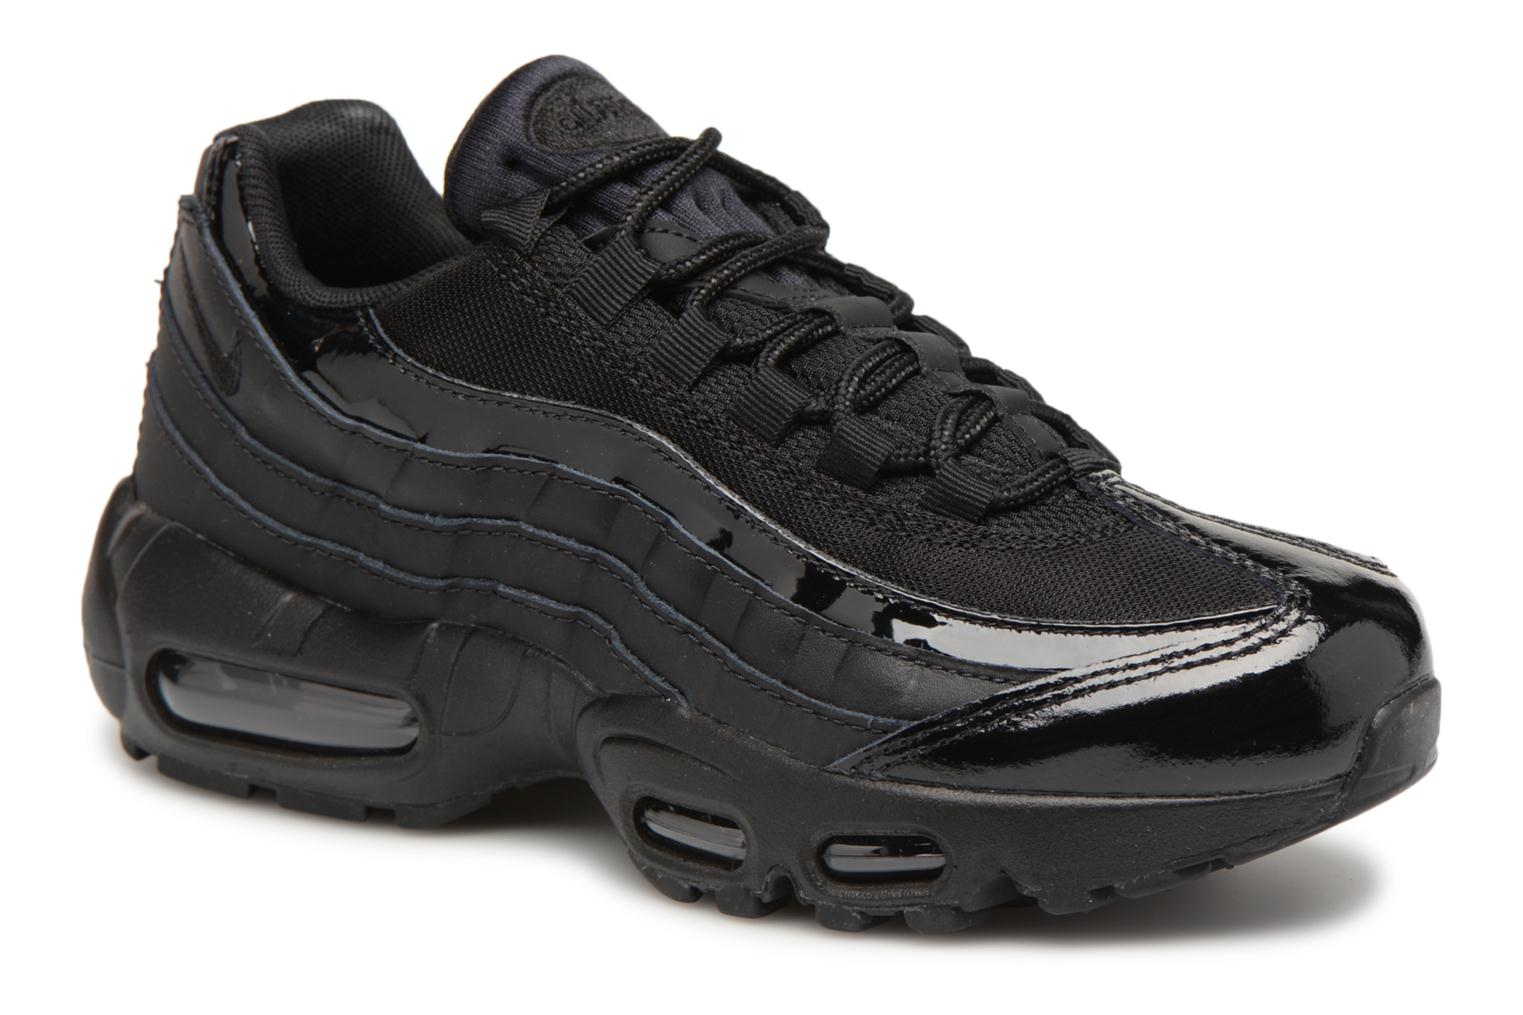 official nike air max 95 prototype for sale e381a bdafe